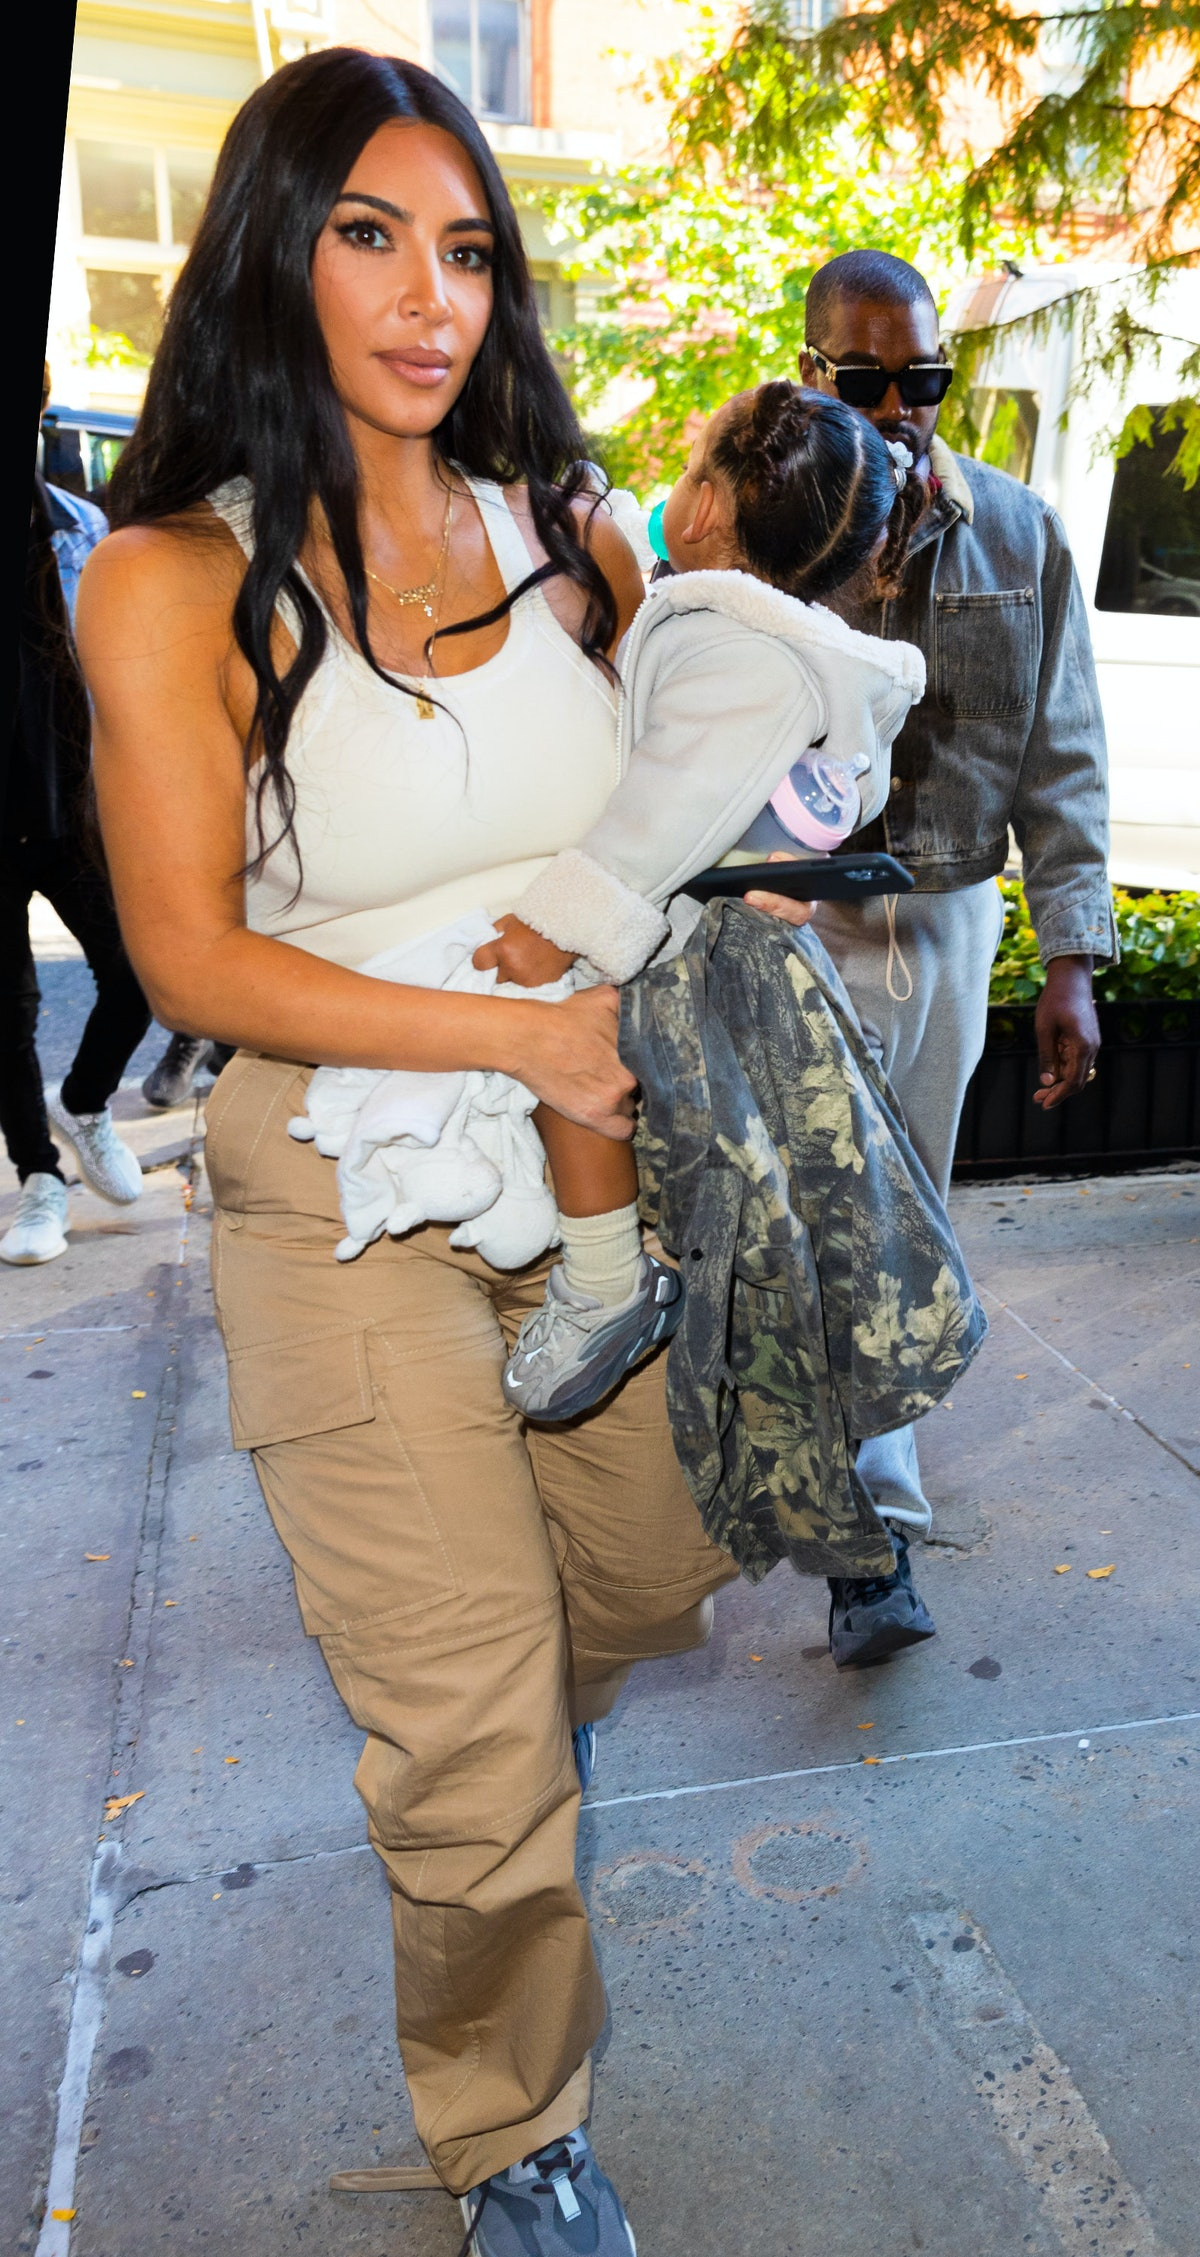 Kim Kardashian steps out with Chicago West and Kanye West.